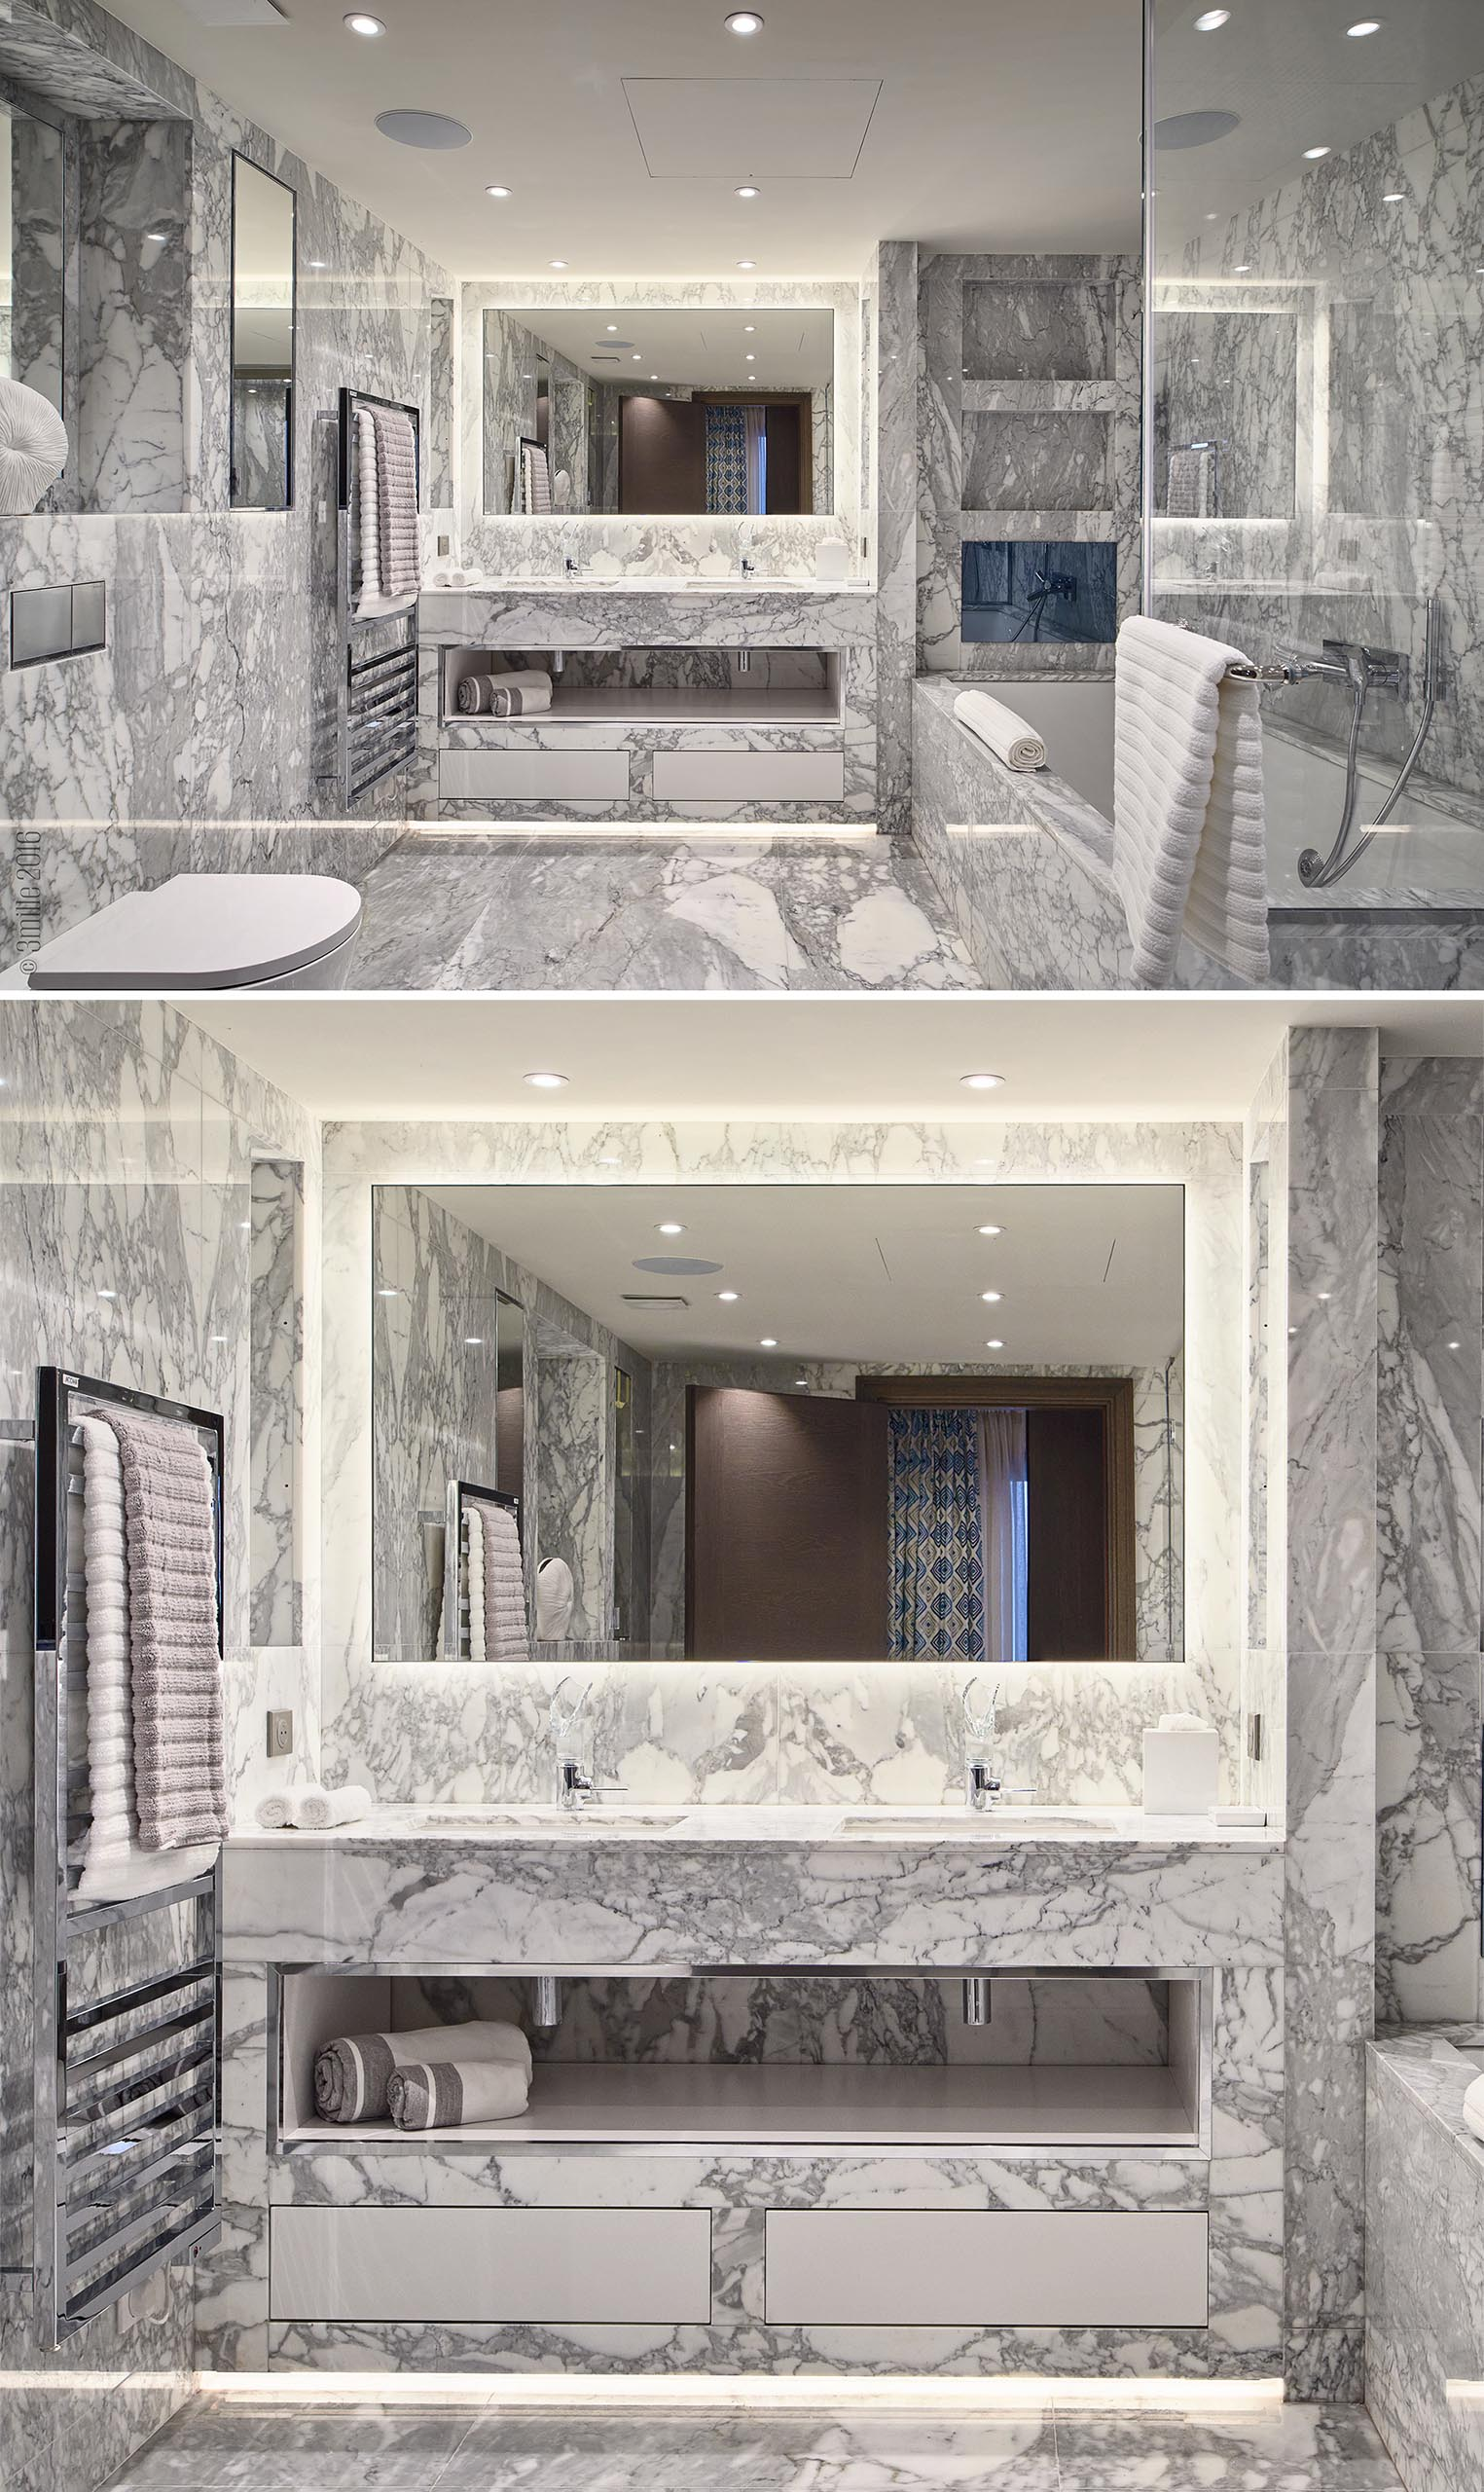 A bathroom with walls and floor covered in grey and white stone.